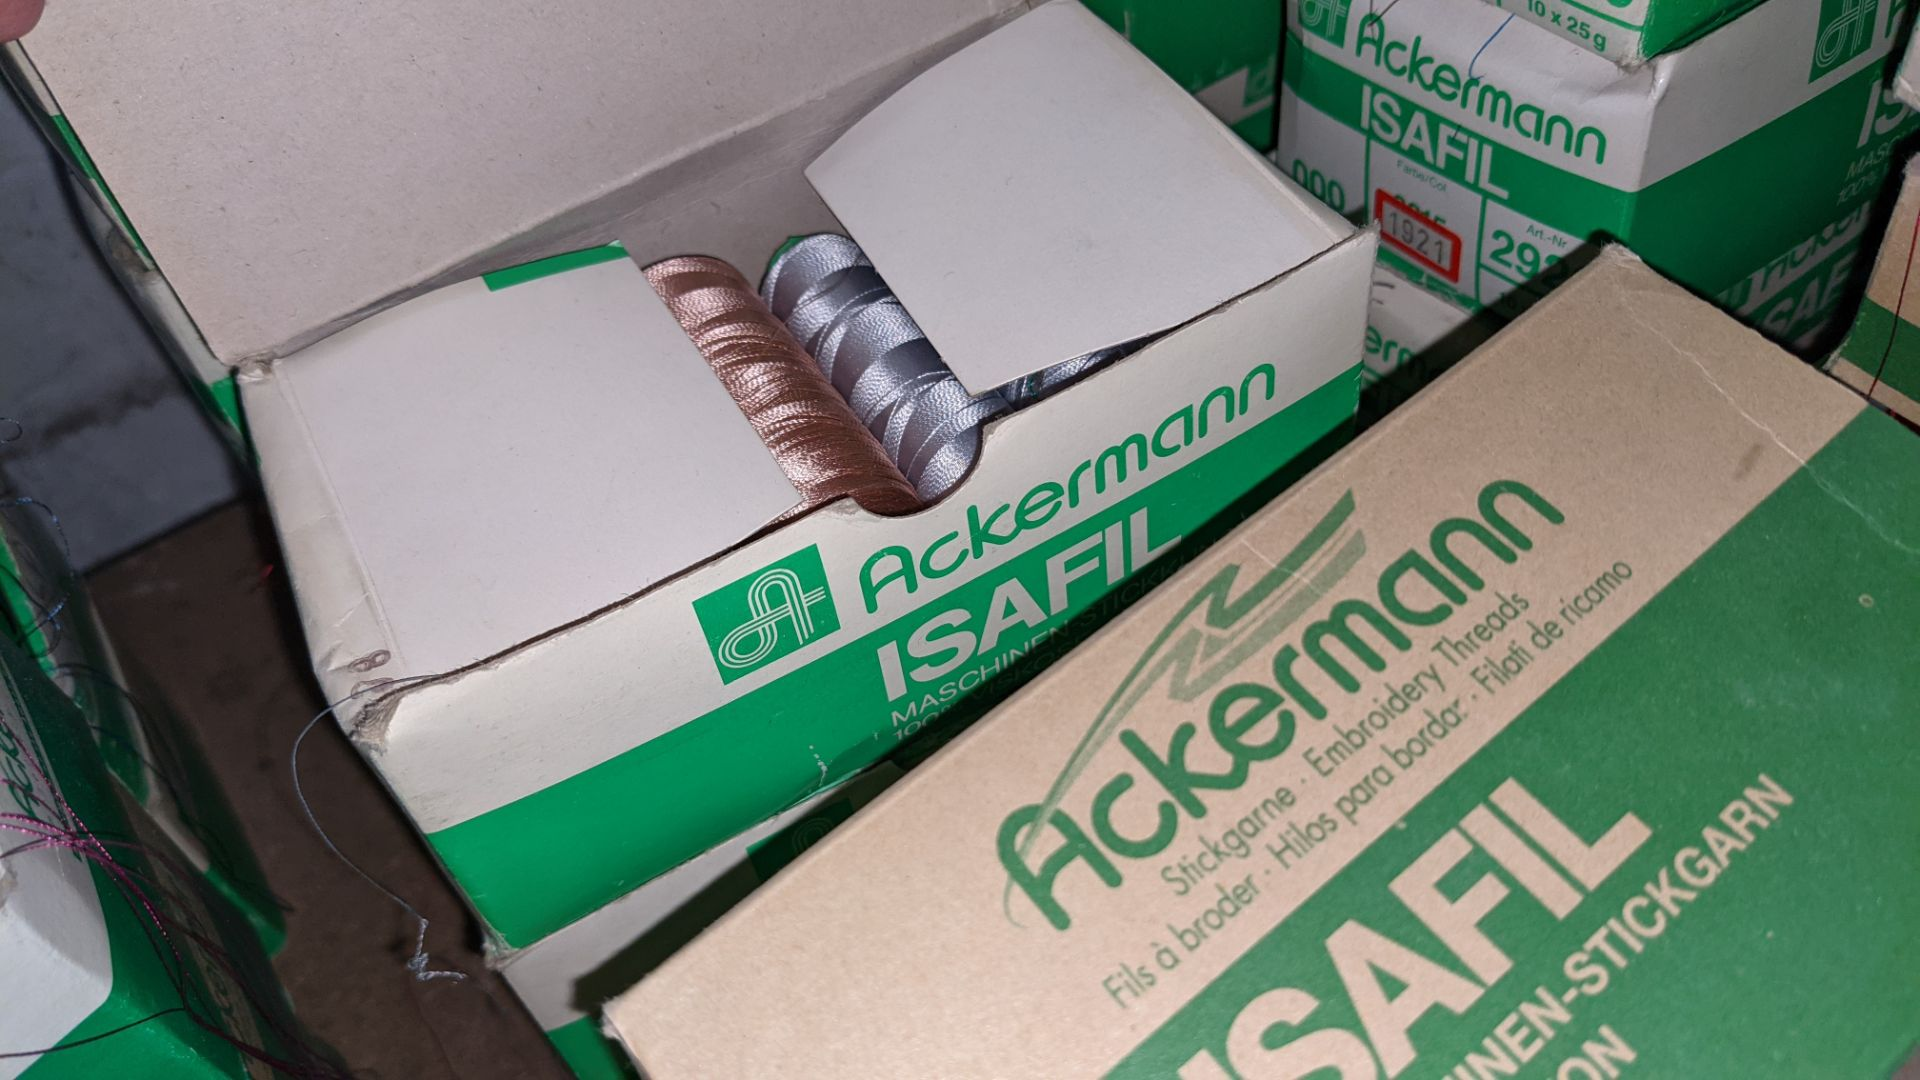 16 boxes of Ackermann Isafil viscose/rayon embroidery thread - Image 9 of 10